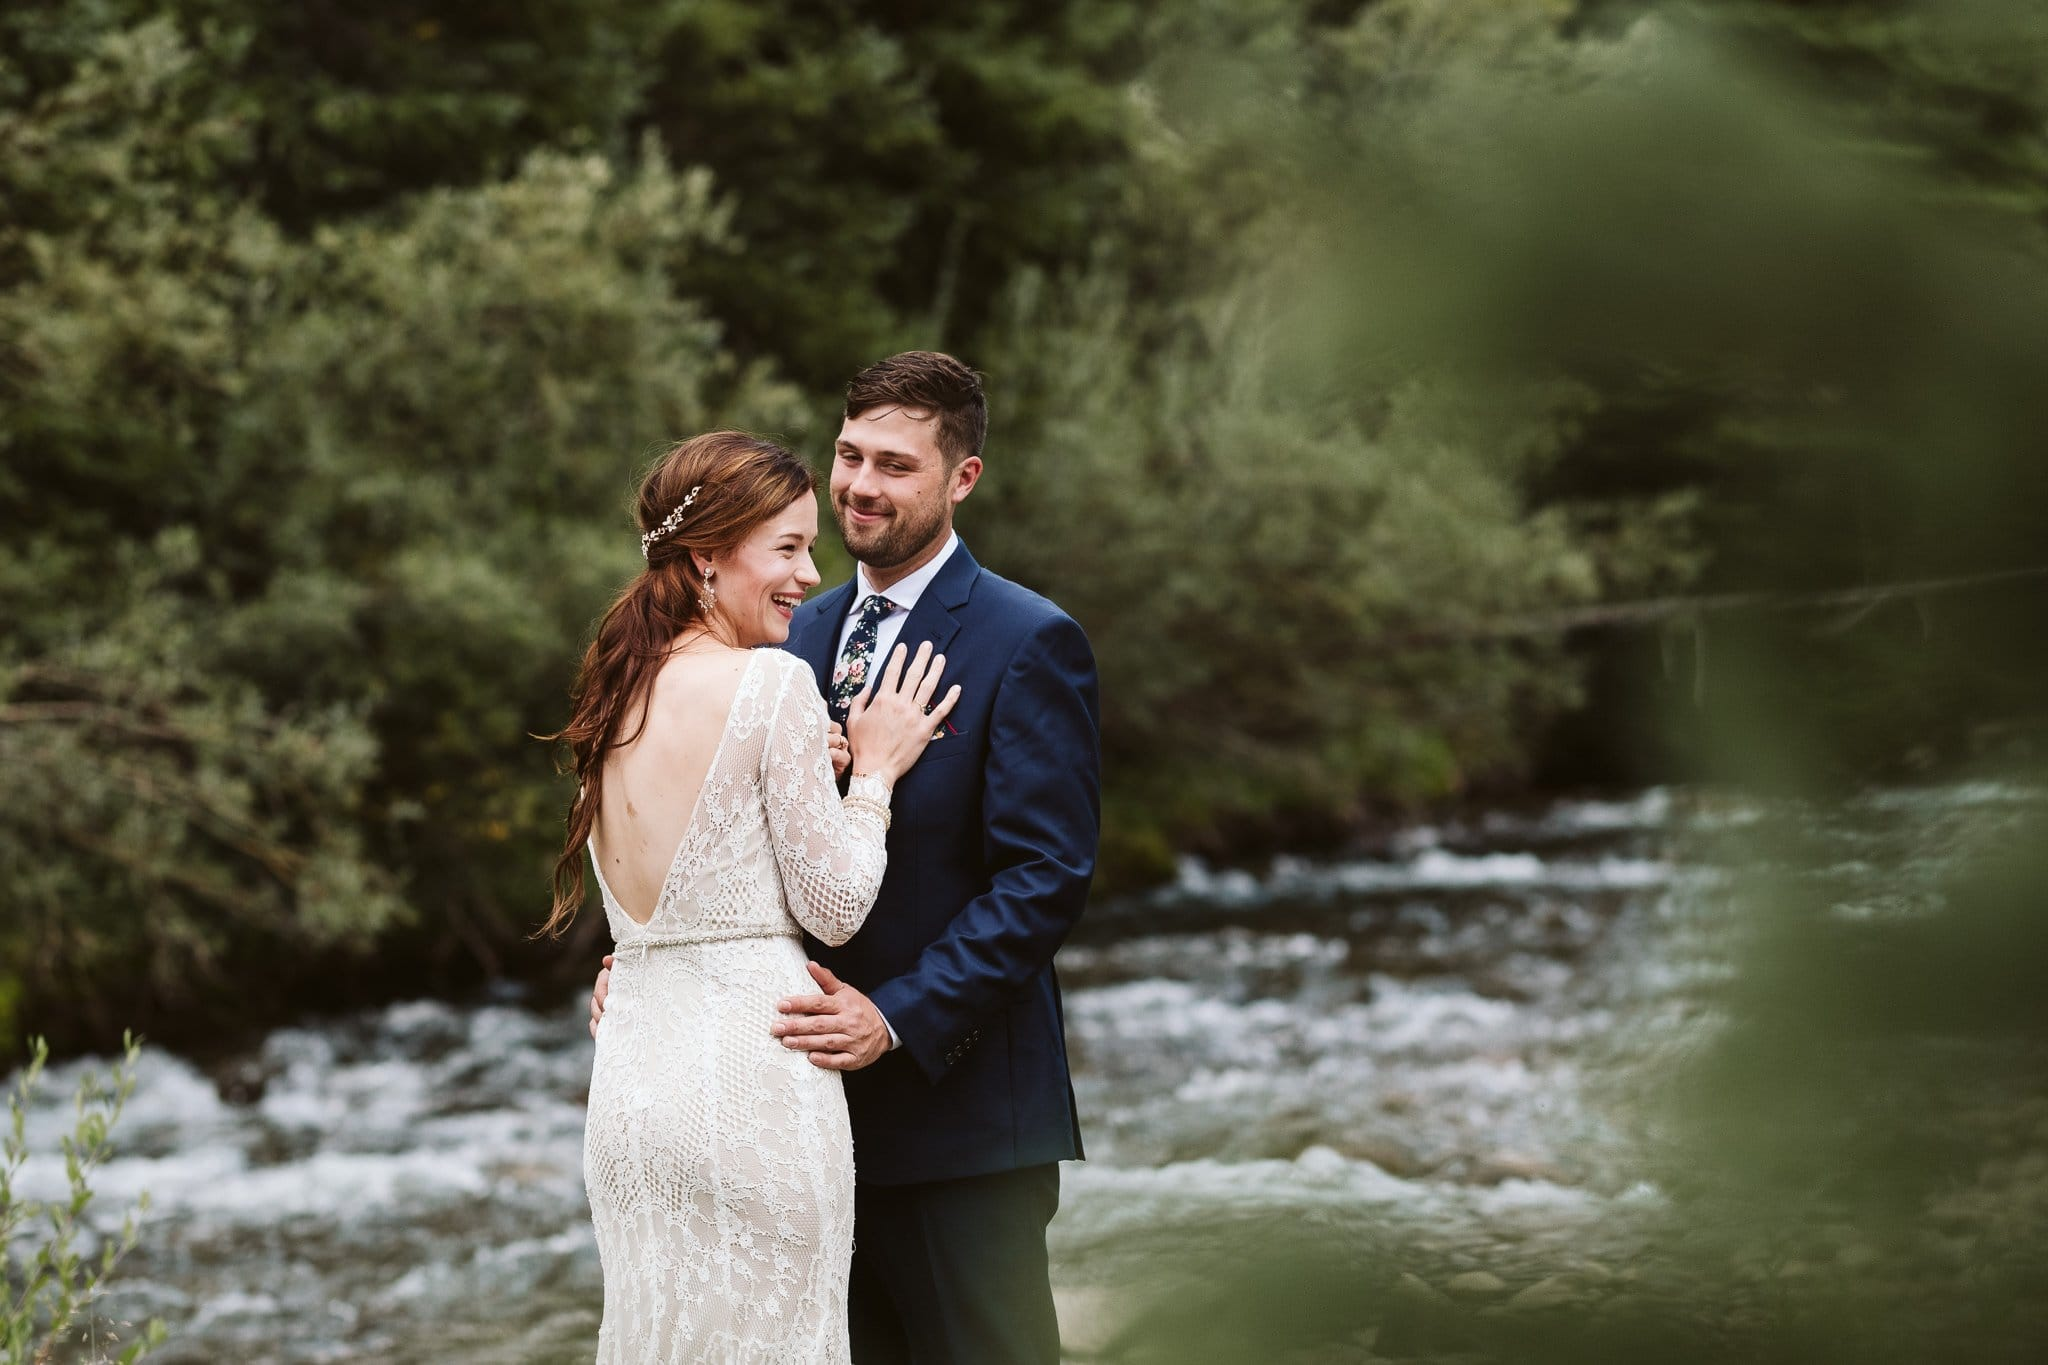 Bride and groom first look by a river in Colorado, Rivertree Lodge wedding photographer